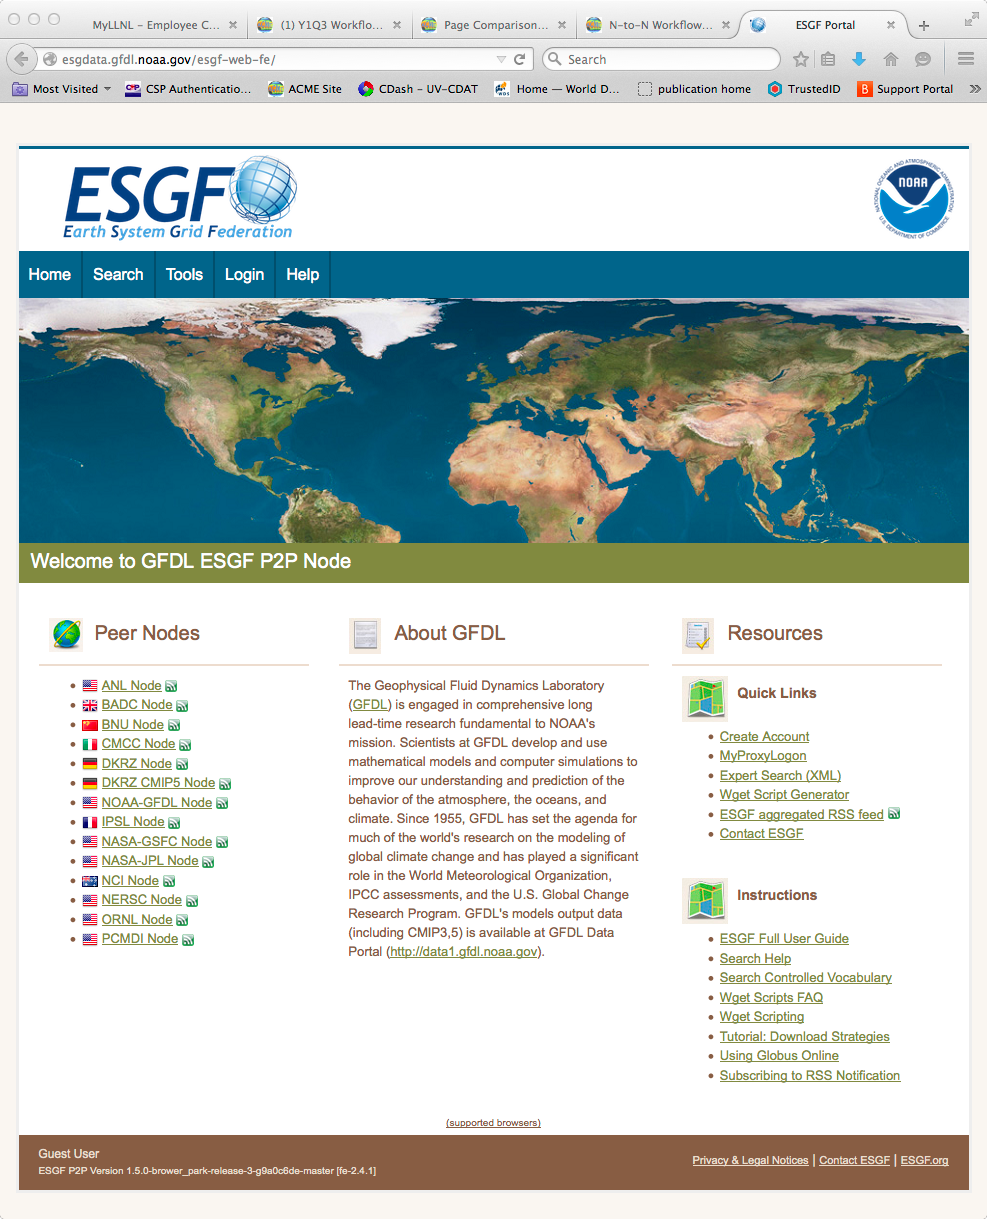 NOAA ESGF Page